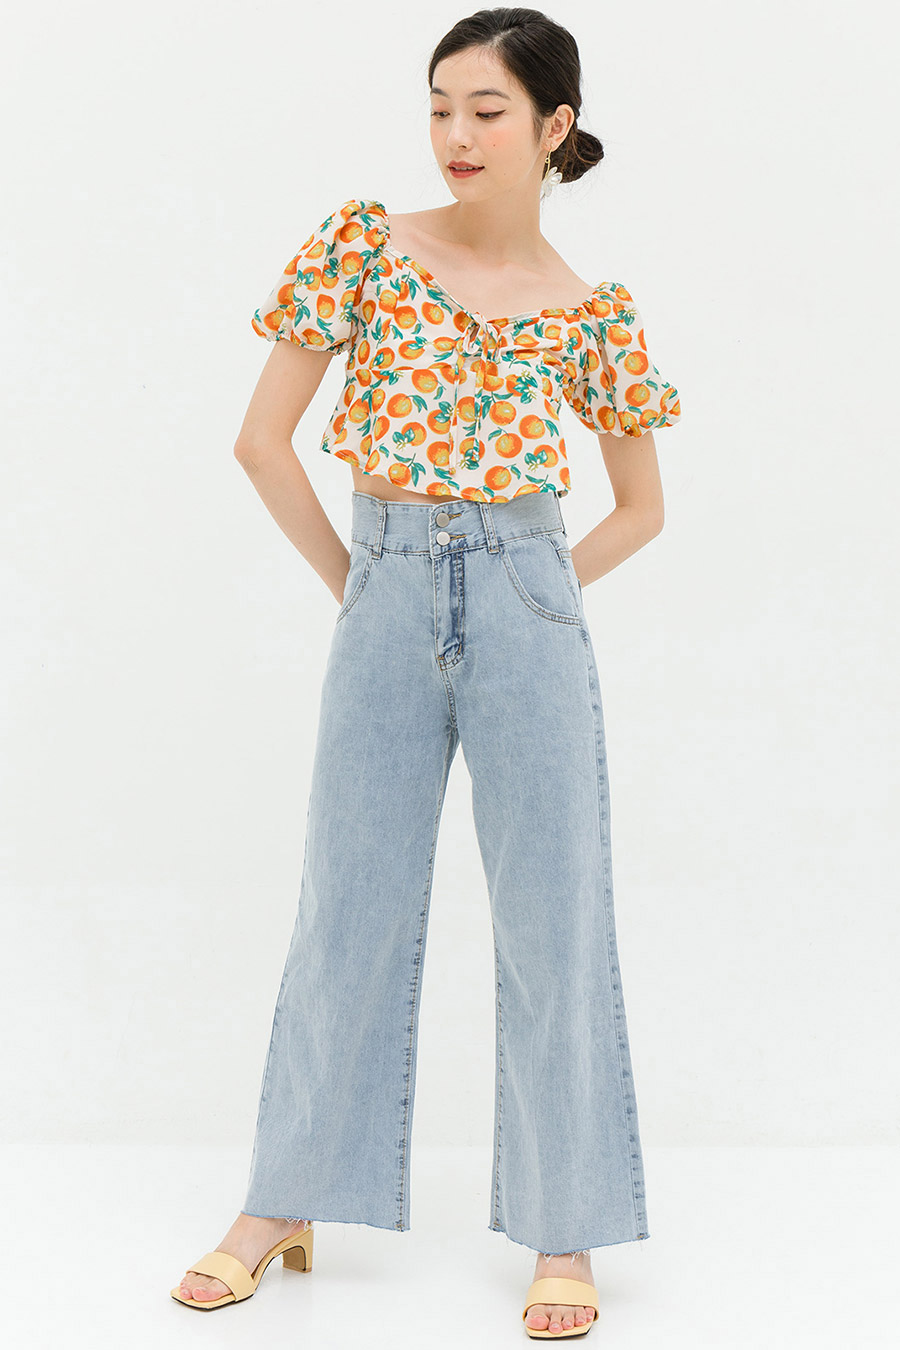 MAIA JEANS - LIGHT WASH